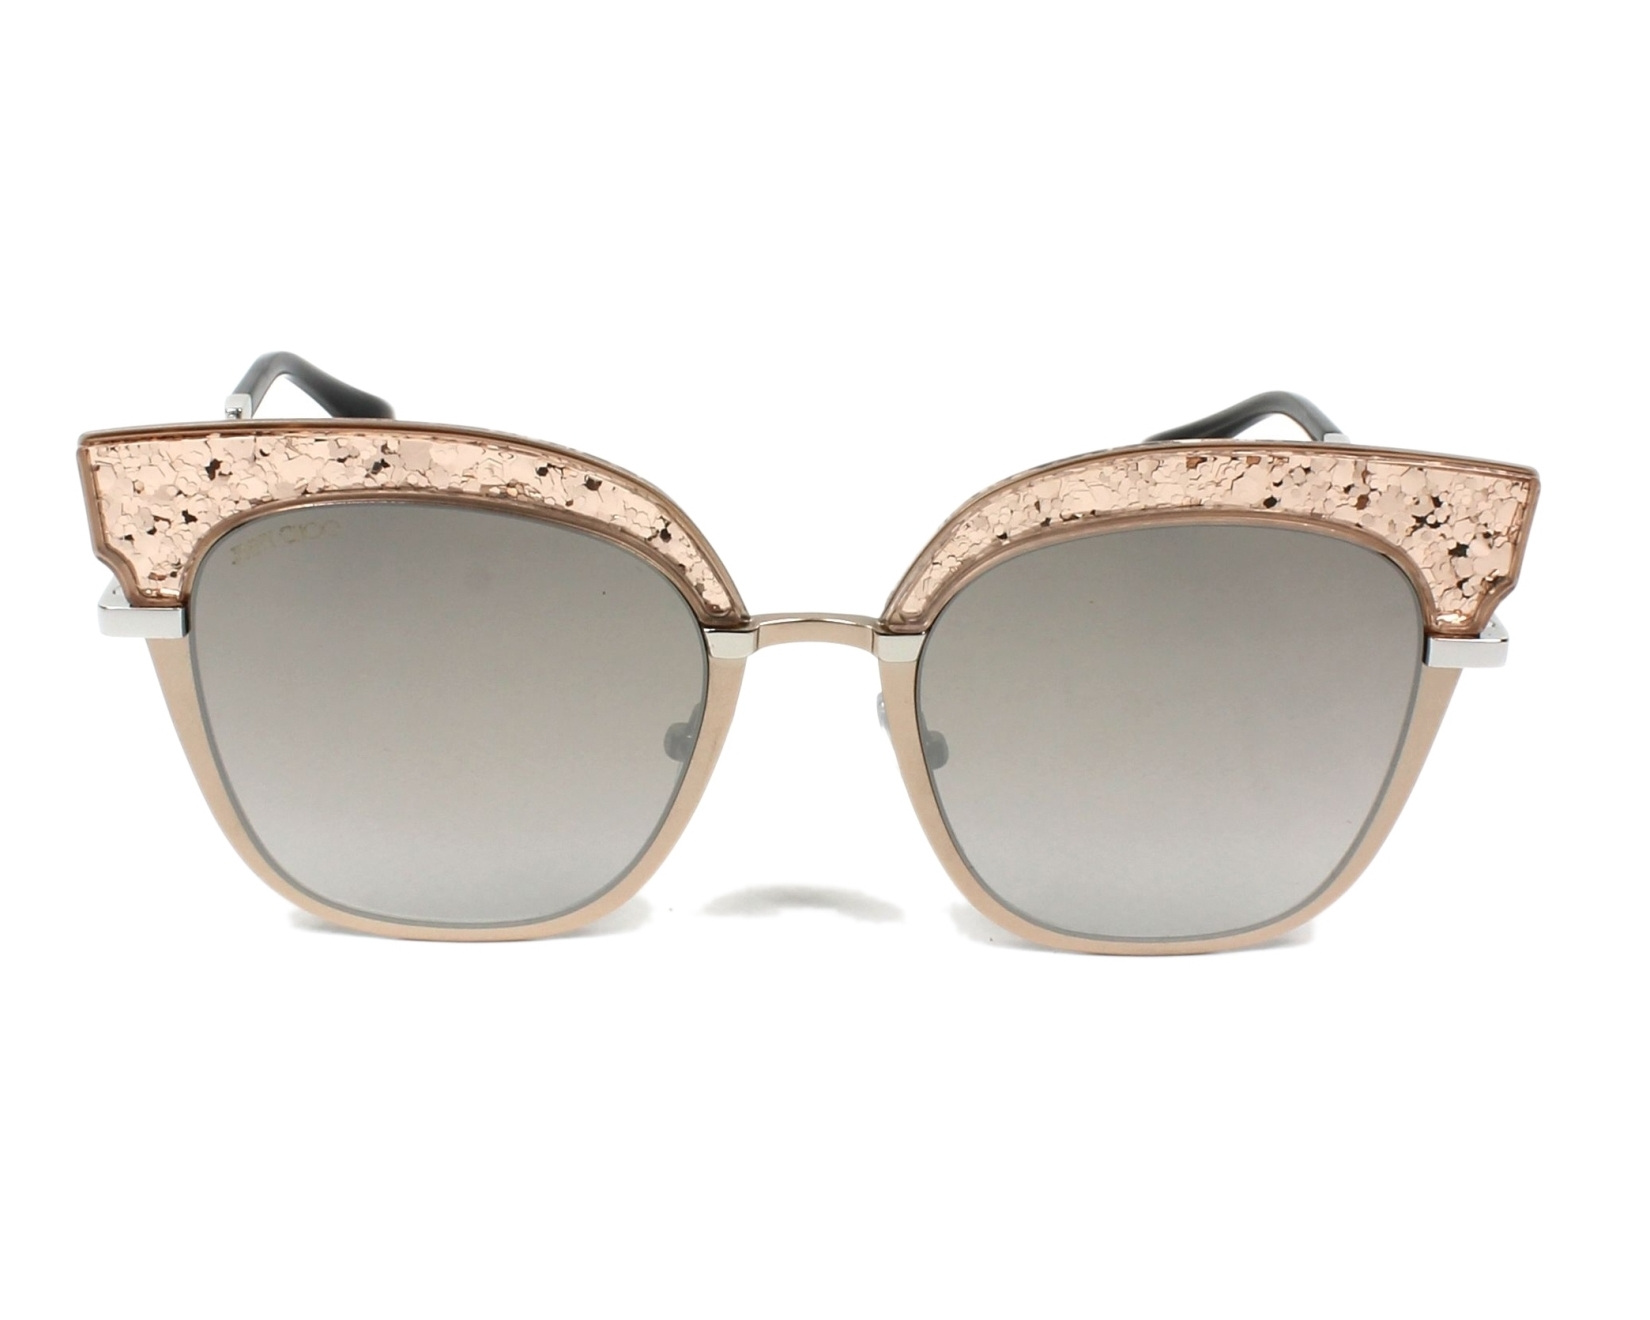 6272d940be5 Sunglasses Jimmy Choo ROSY-S 68I NQ 51-20 Rose gold front view